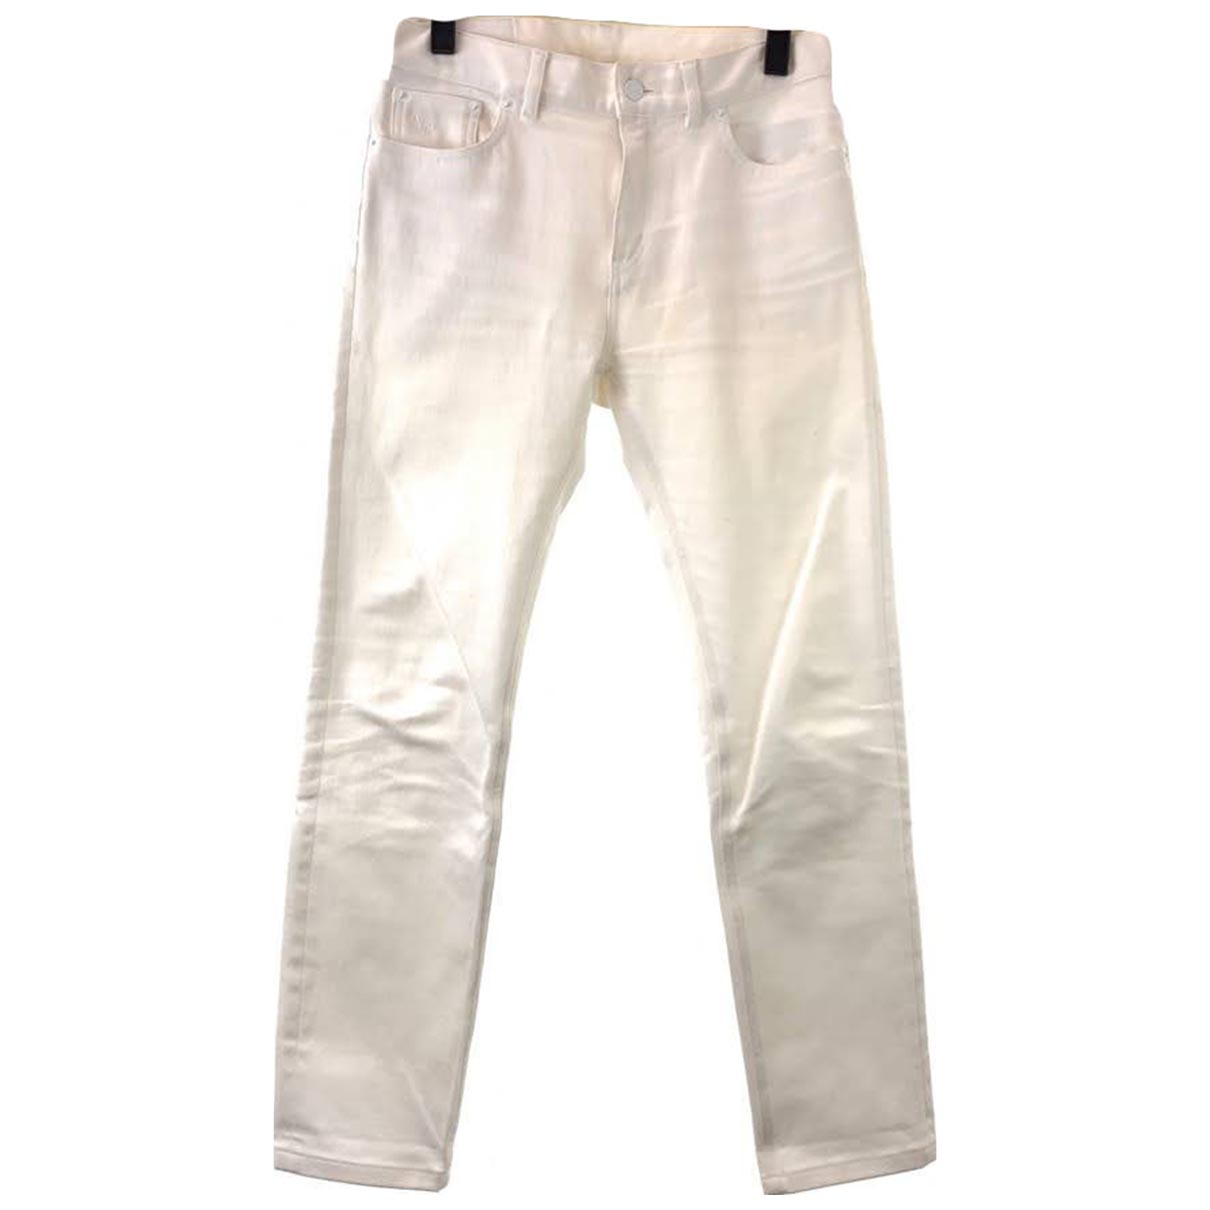 Louis Vuitton \N Cotton Trousers for Men M International